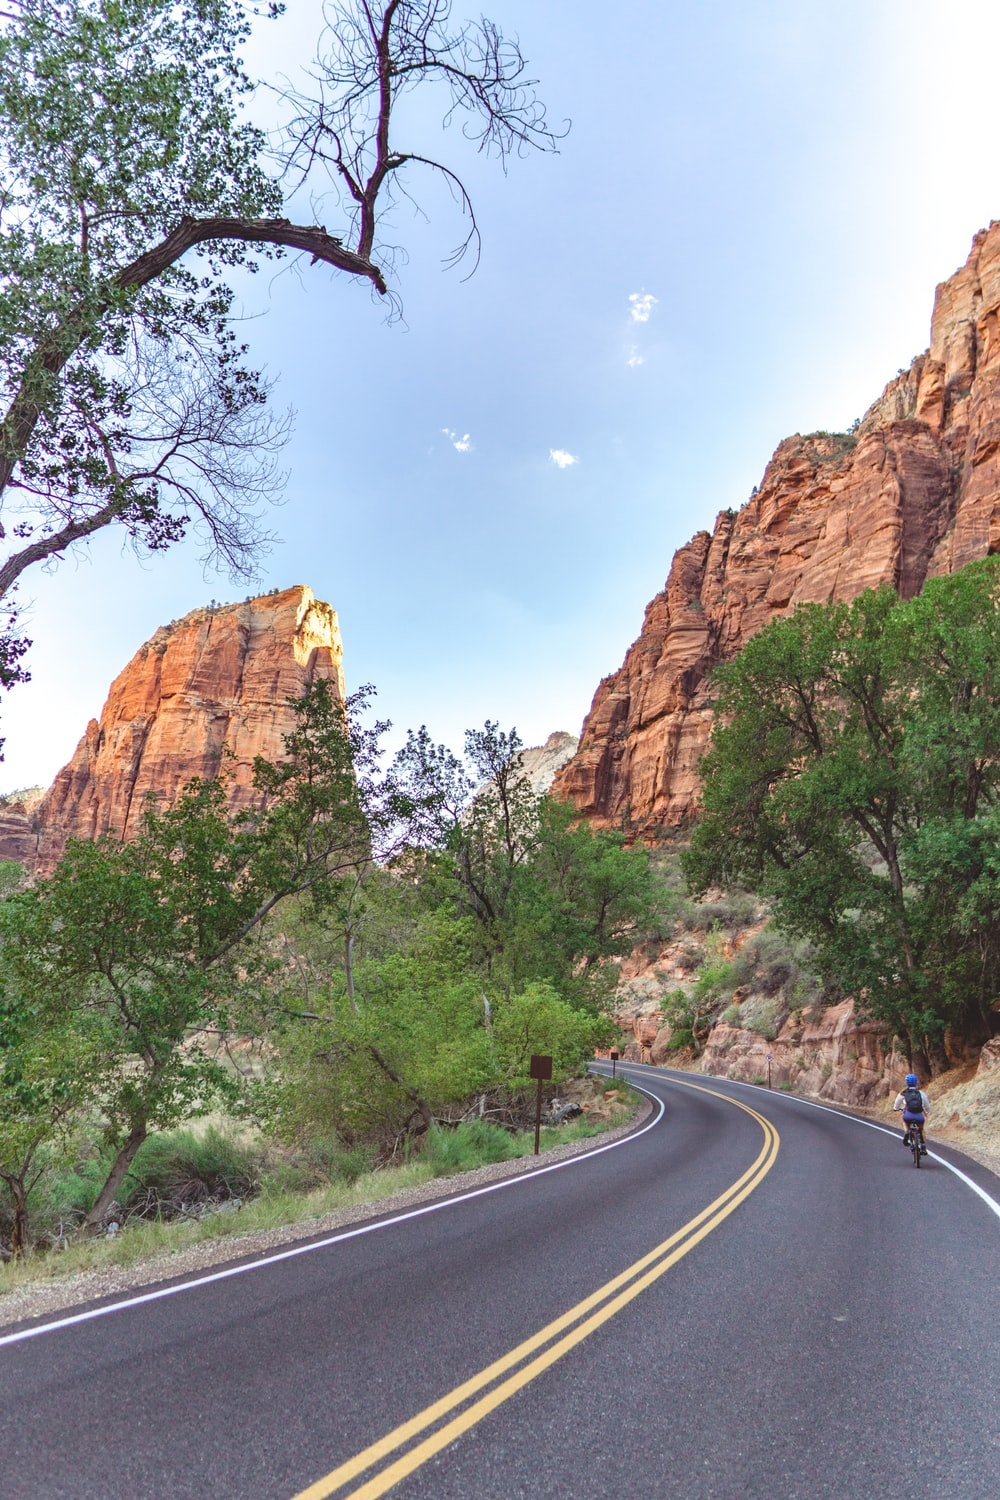 gray concrete road between green trees and brown rock formation during daytime